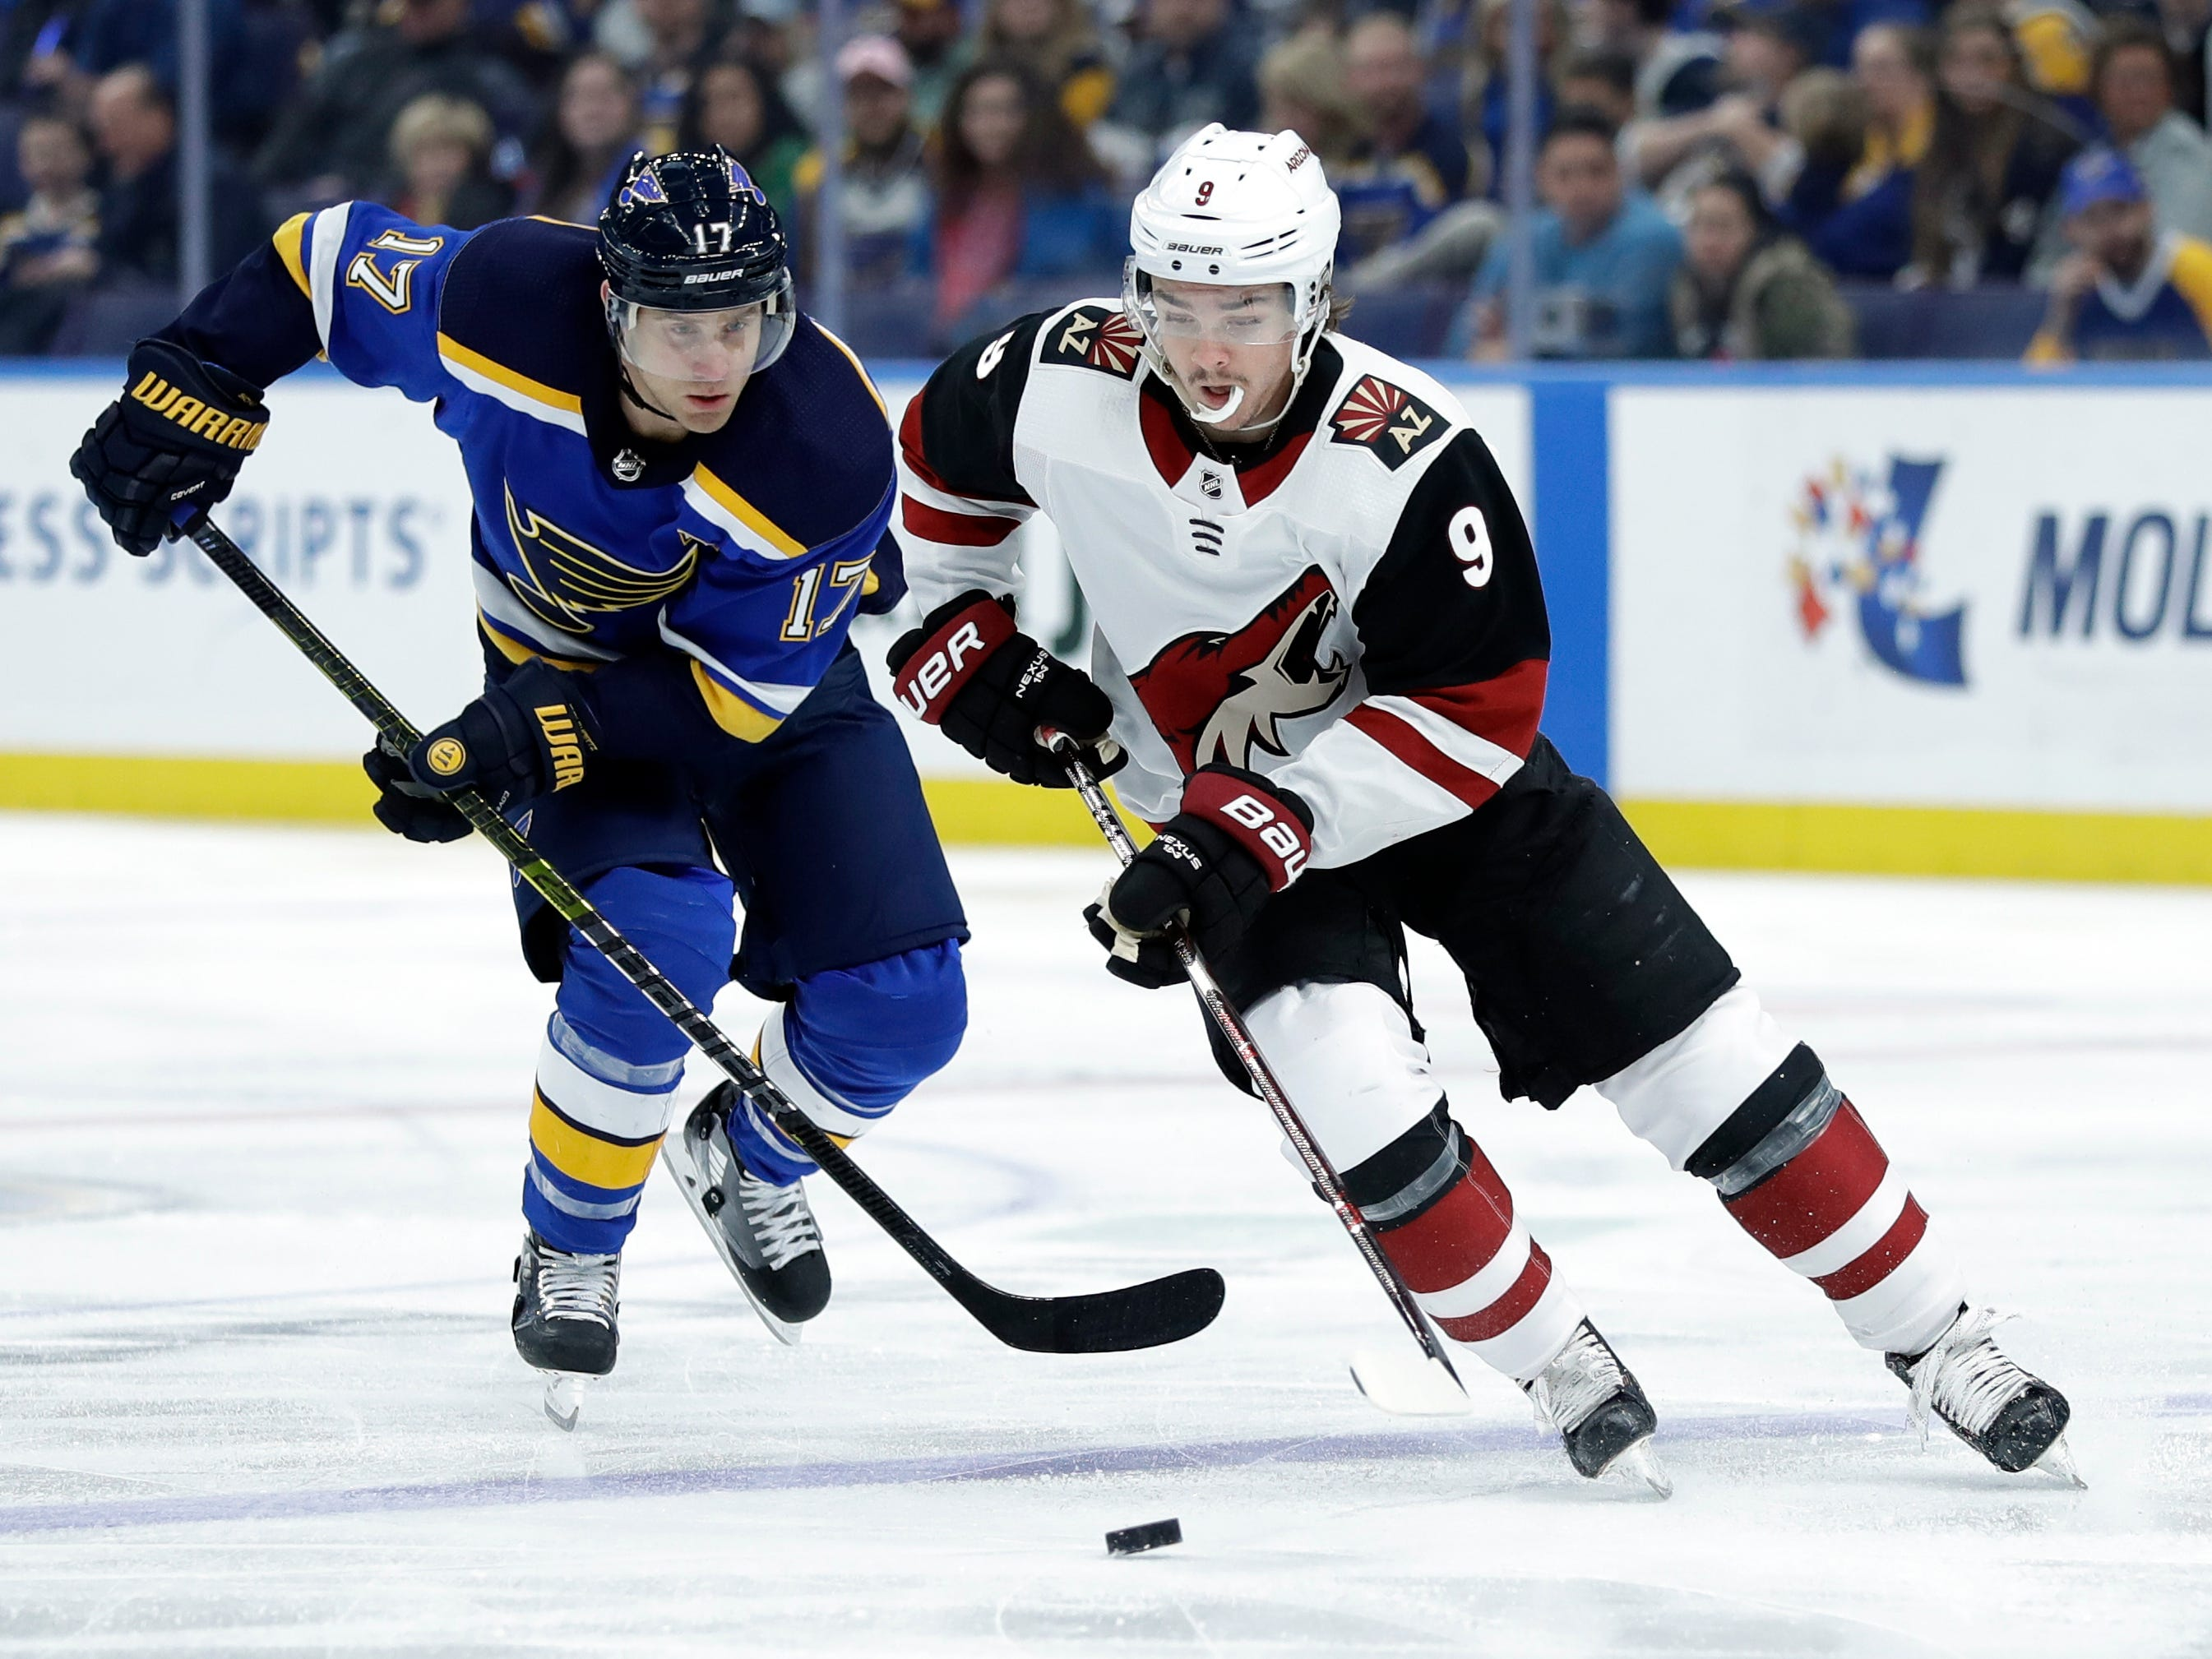 Arizona Coyotes' Clayton Keller (9) brings the puck down the ice as St. Louis Blues' Jaden Schwartz (17) gives chase during the first period of an NHL hockey game, Tuesday, March 12, 2019, in St. Louis.